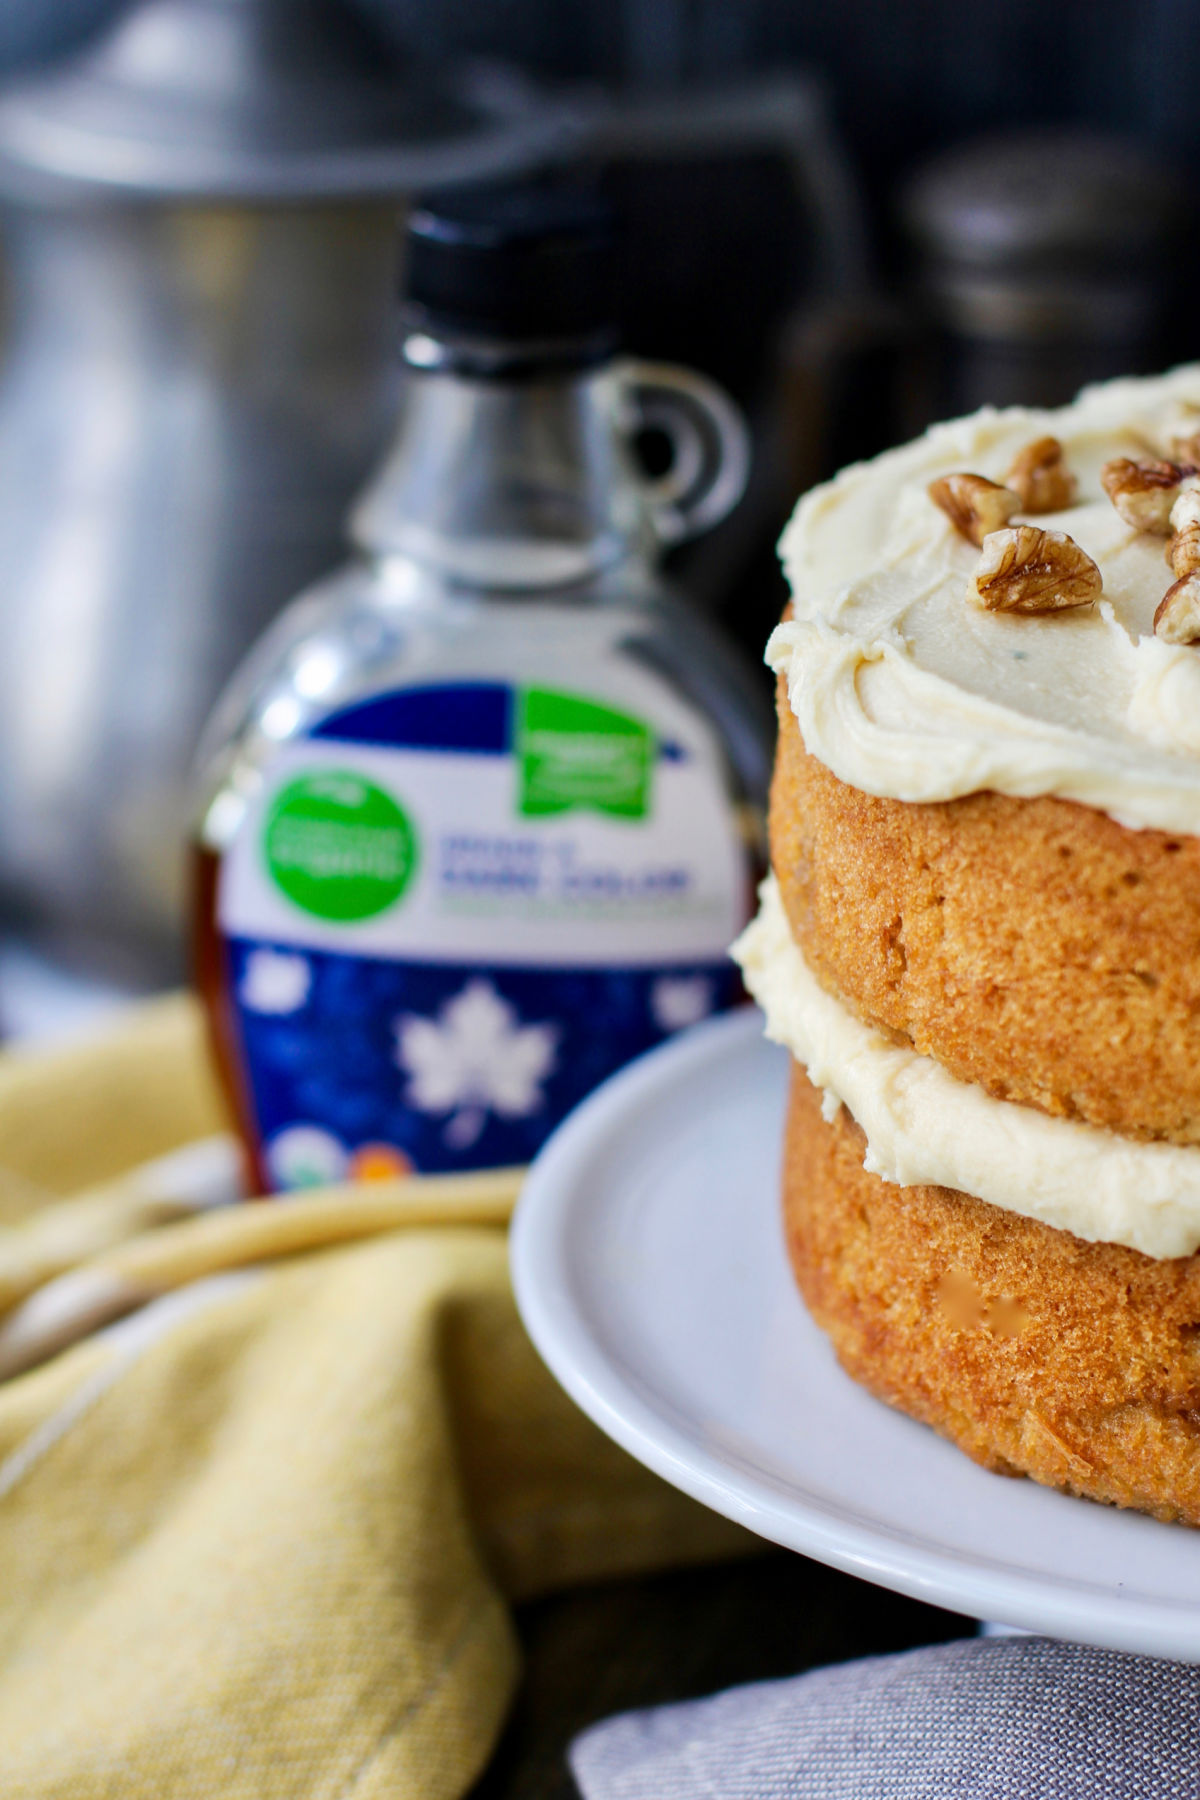 Maple cake and maple syrup.